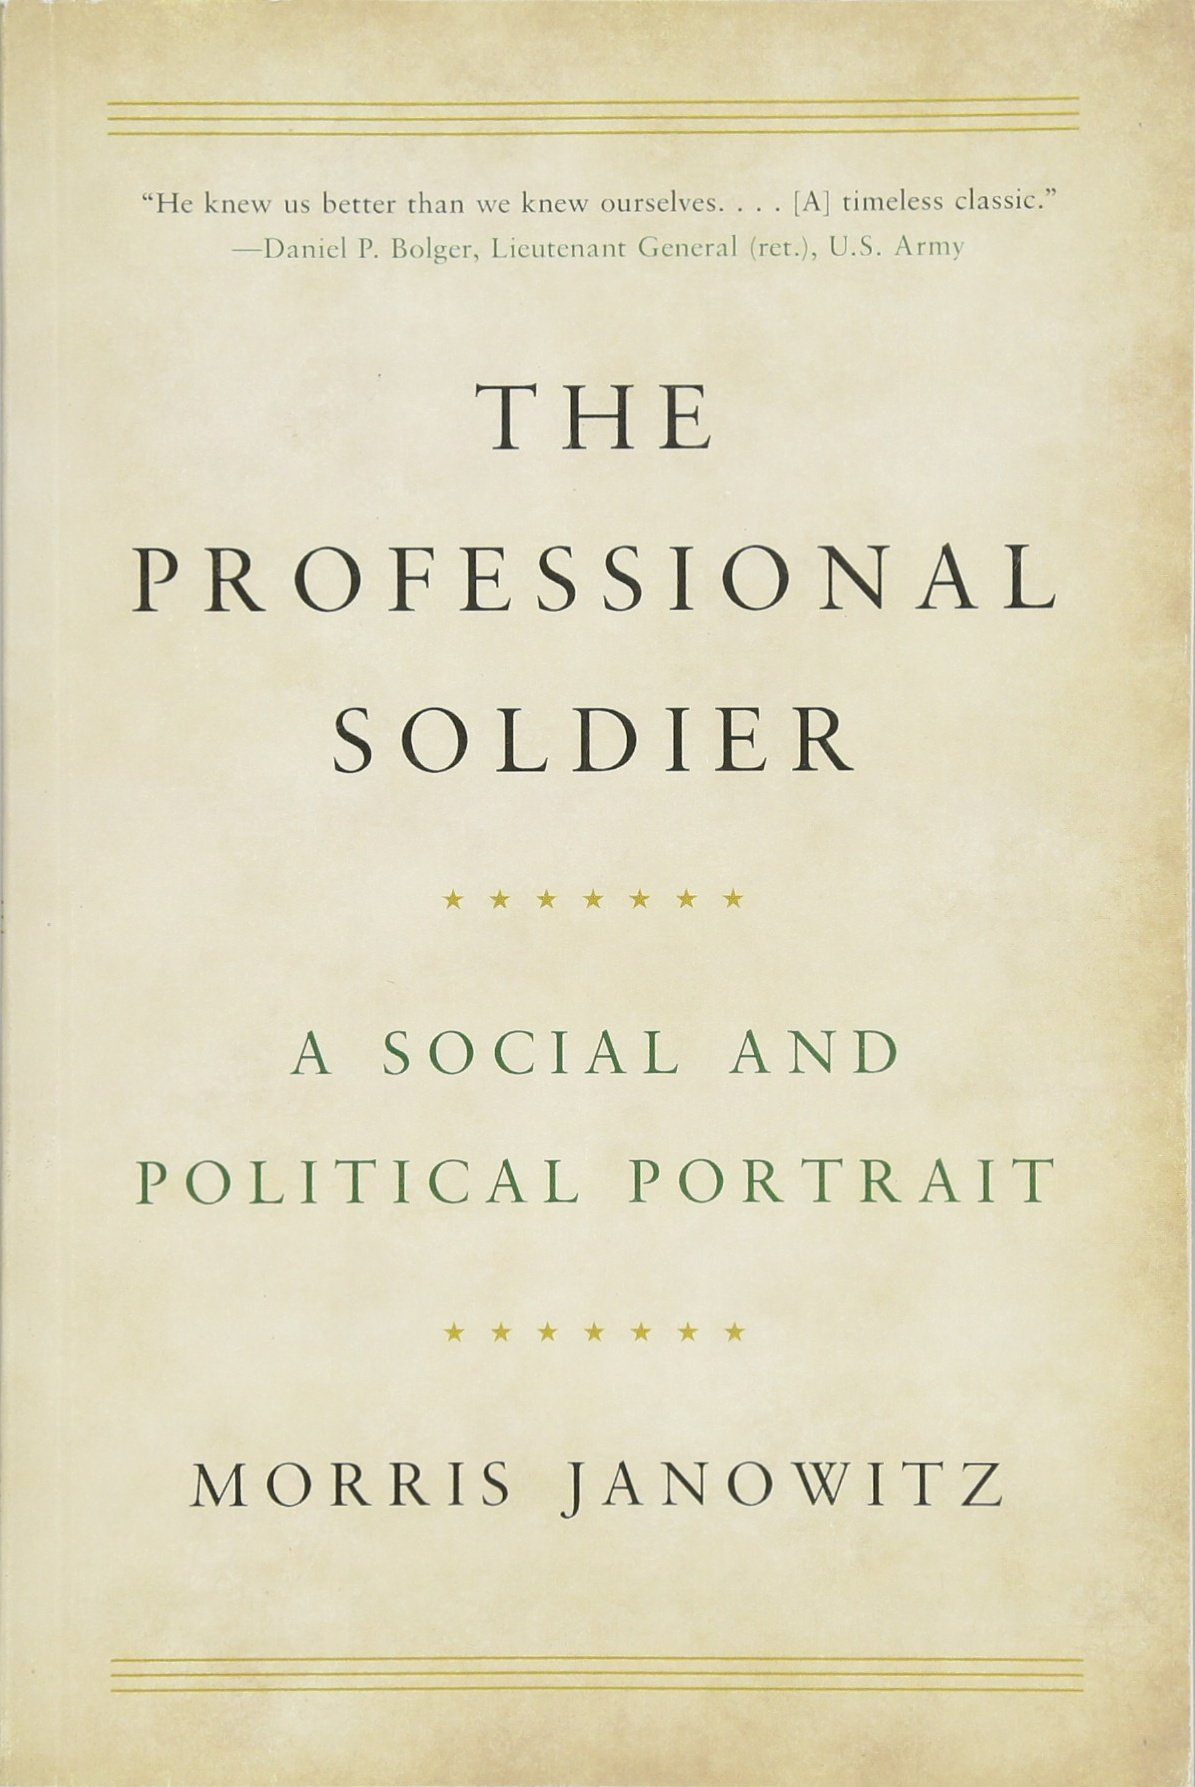 Amazon.com: The Professional Soldier: A Social and Political ...